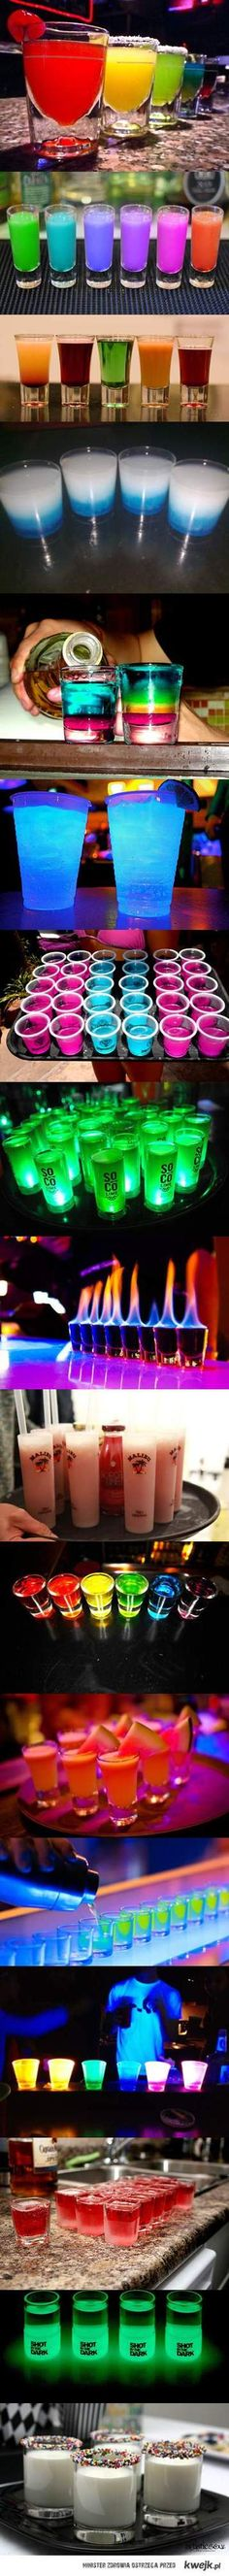 Even the images of these glow in the dark drinks made my long day at office happy!